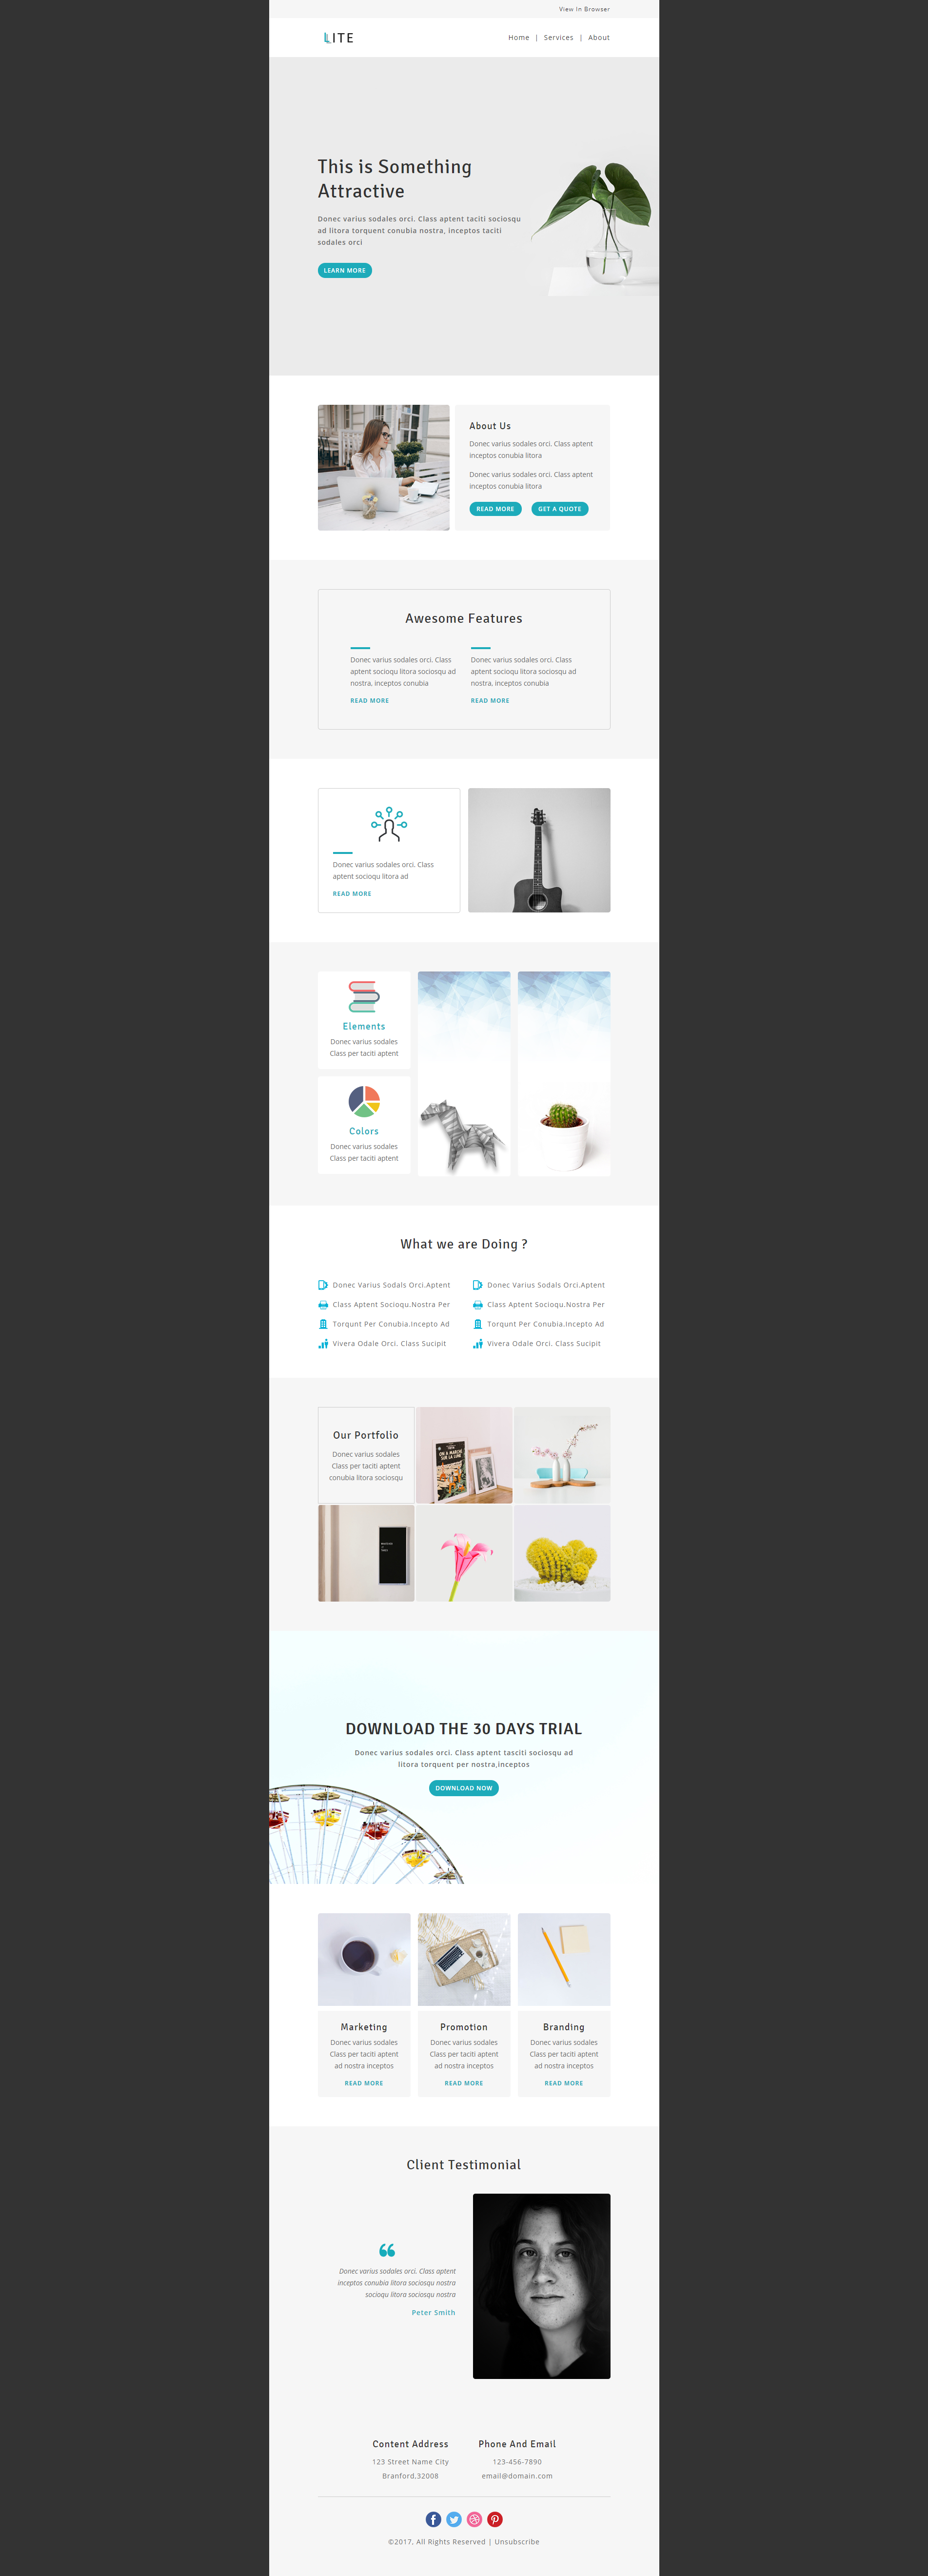 Multipurpose responsive email template designed for ...